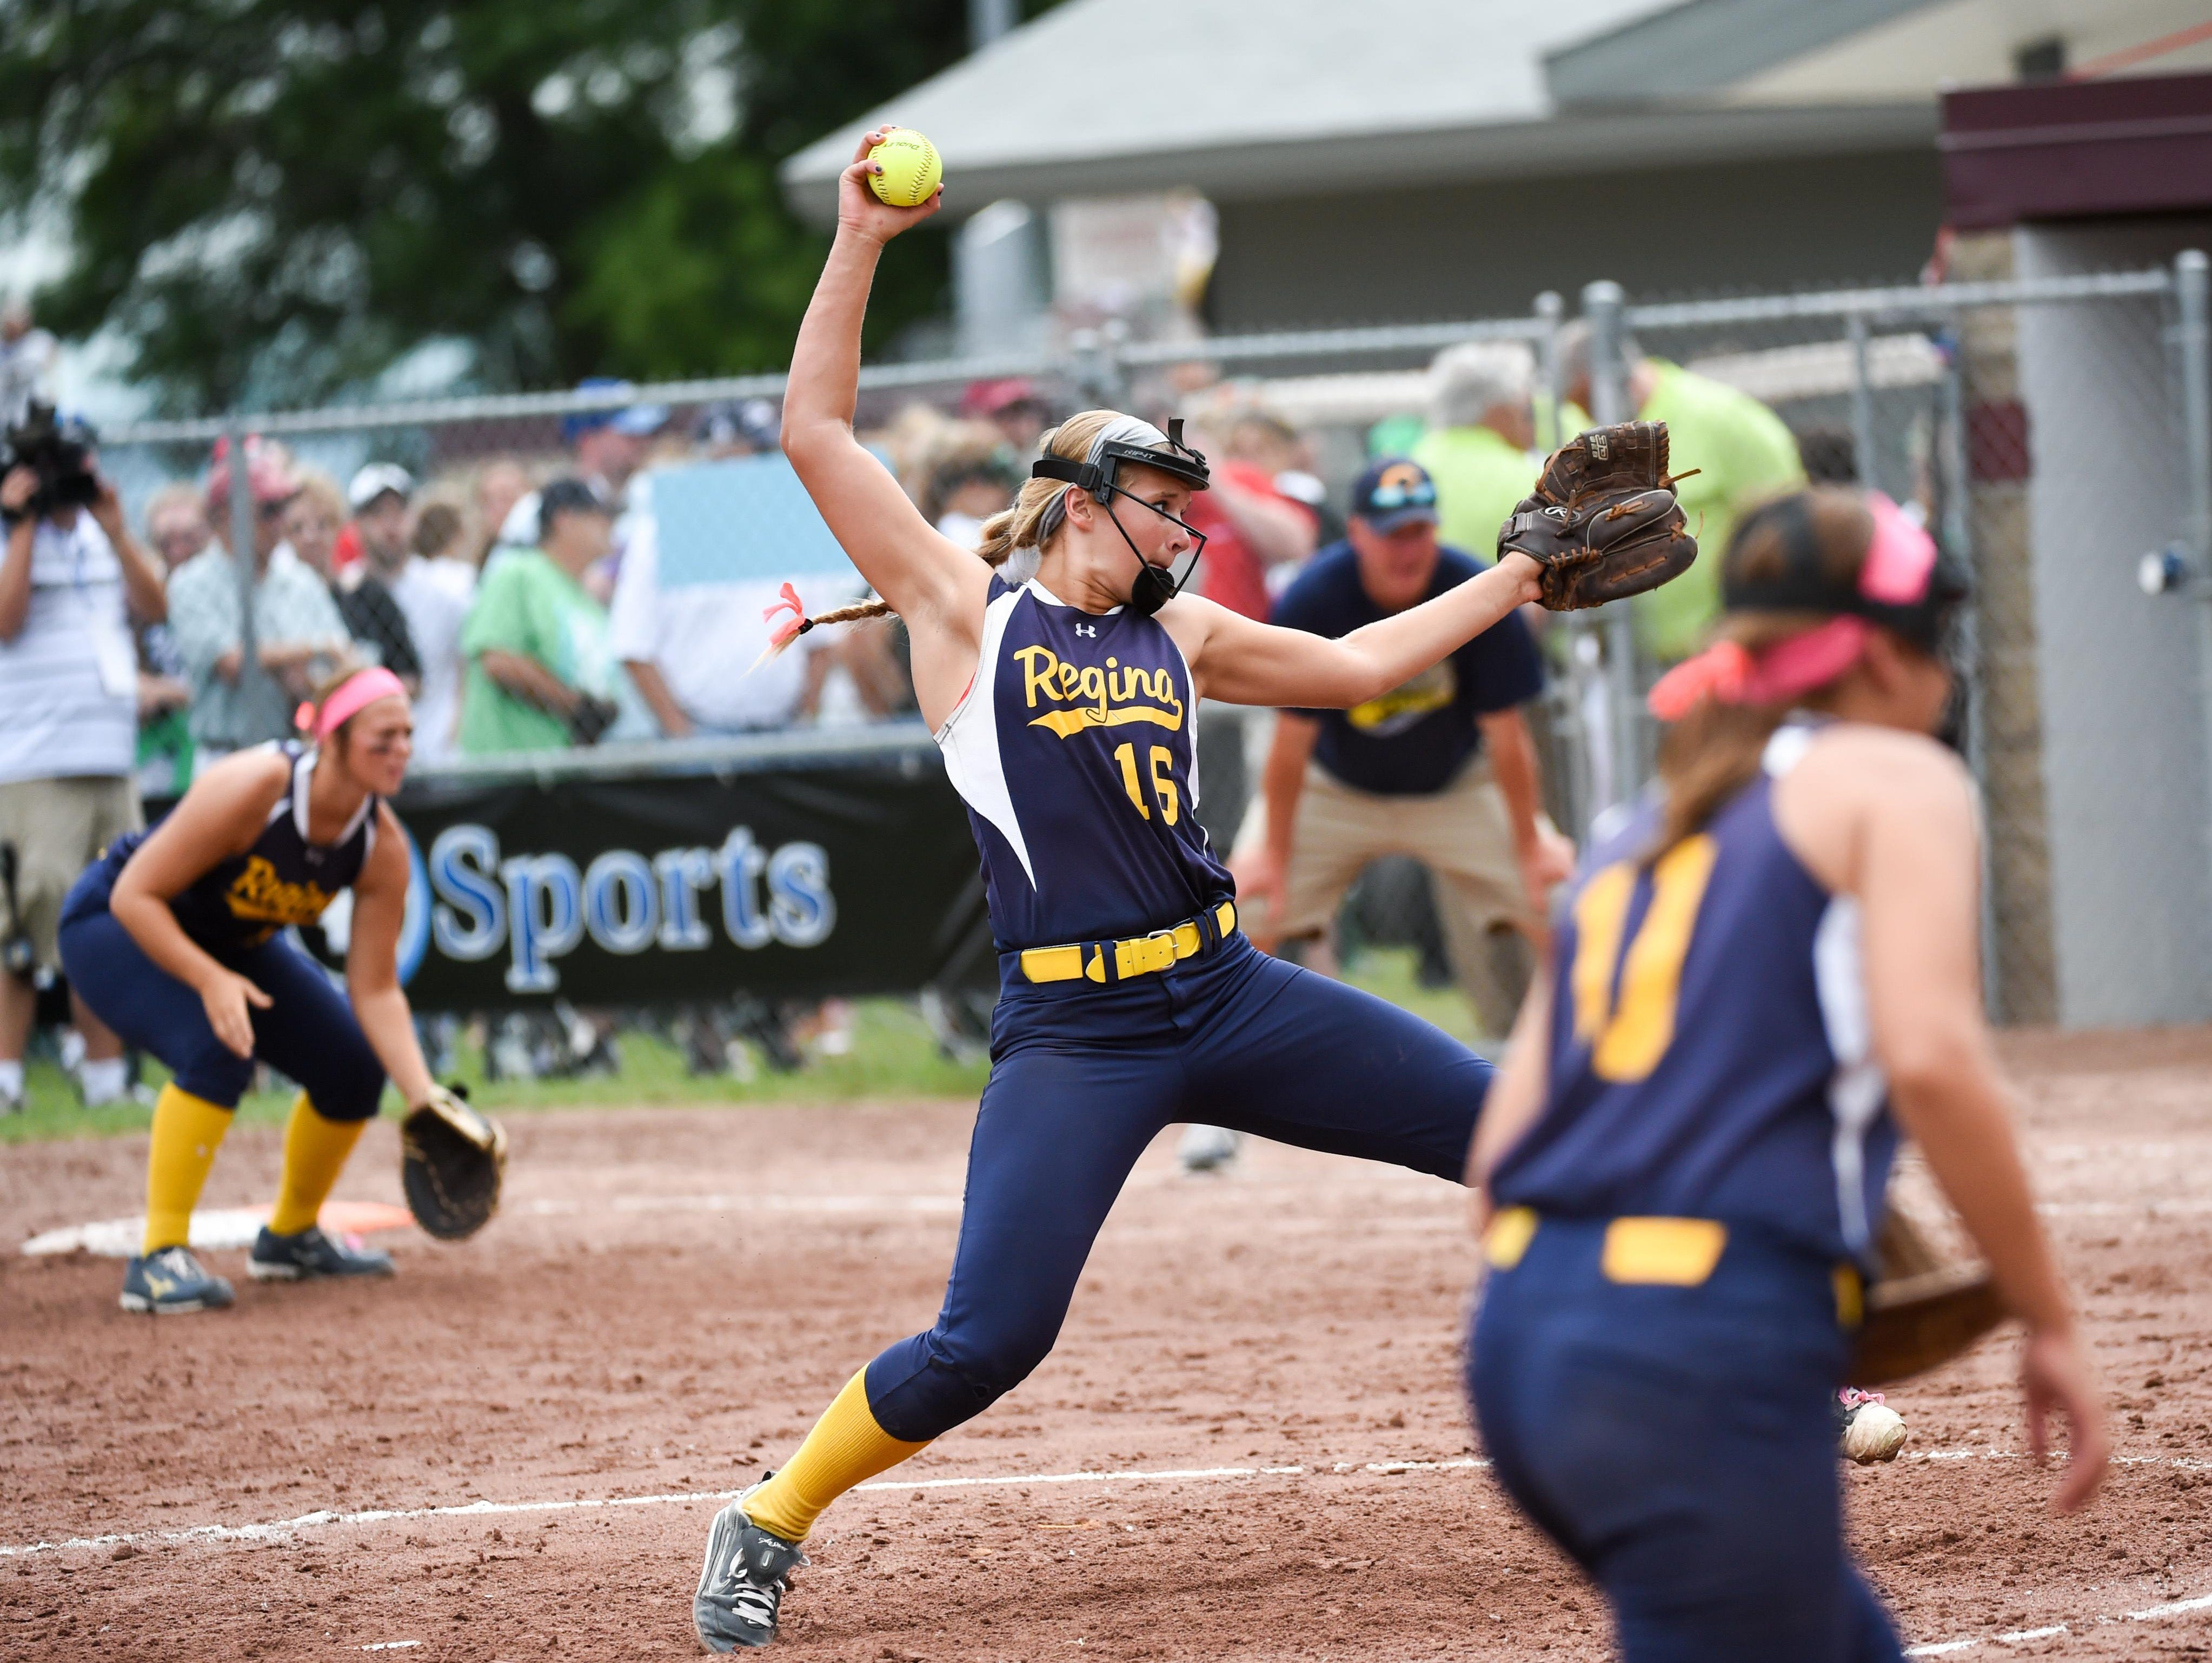 Iowa City Regina's Sarah Lehman winds up to throw the final pitch of the game on Friday as the Regals secured the Class 2A state softball title. Lehman recorded 12 strikeouts.